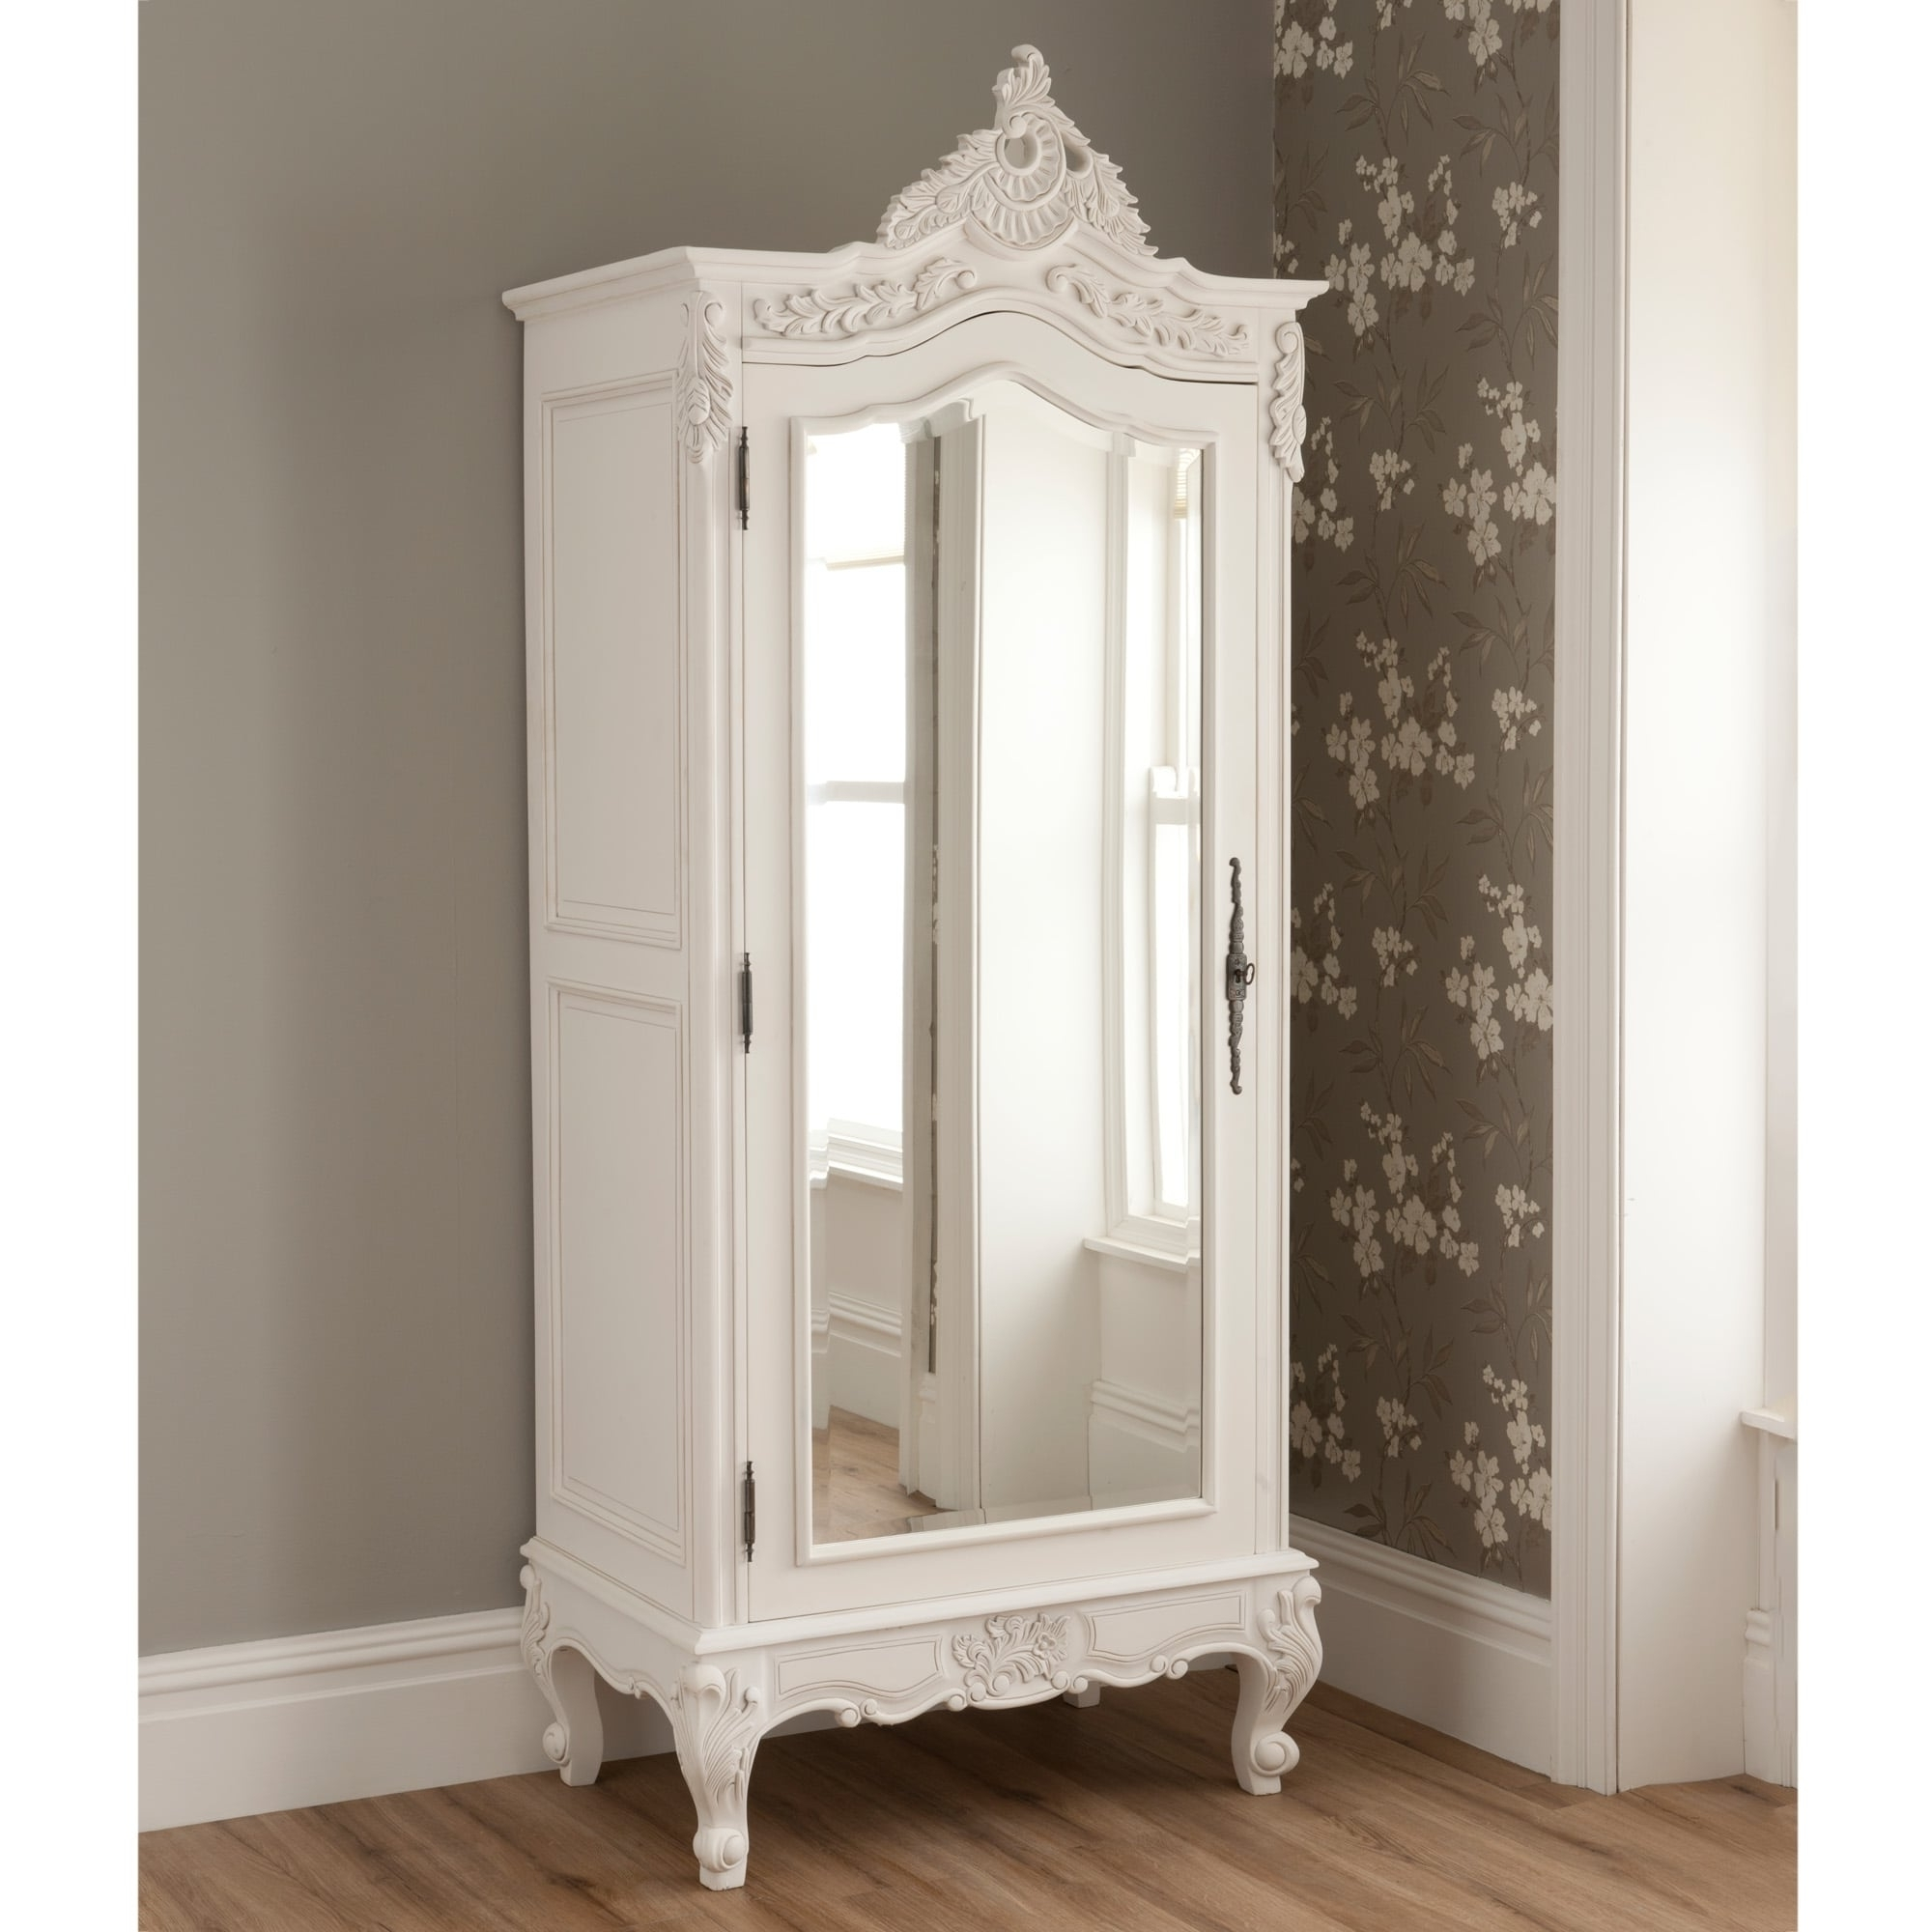 One Door Mirrored Wardrobes Pertaining To Most Current La Rochelle Mirrored Antique French 1 Door Wardrobe (View 9 of 15)